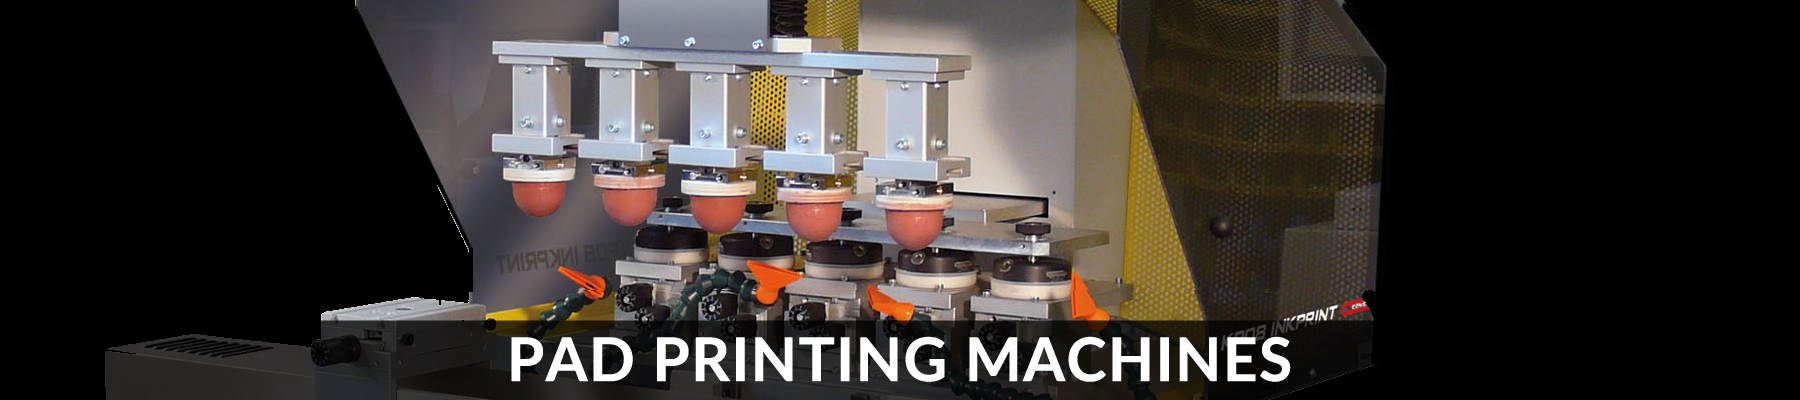 Pad Printing Machines 1